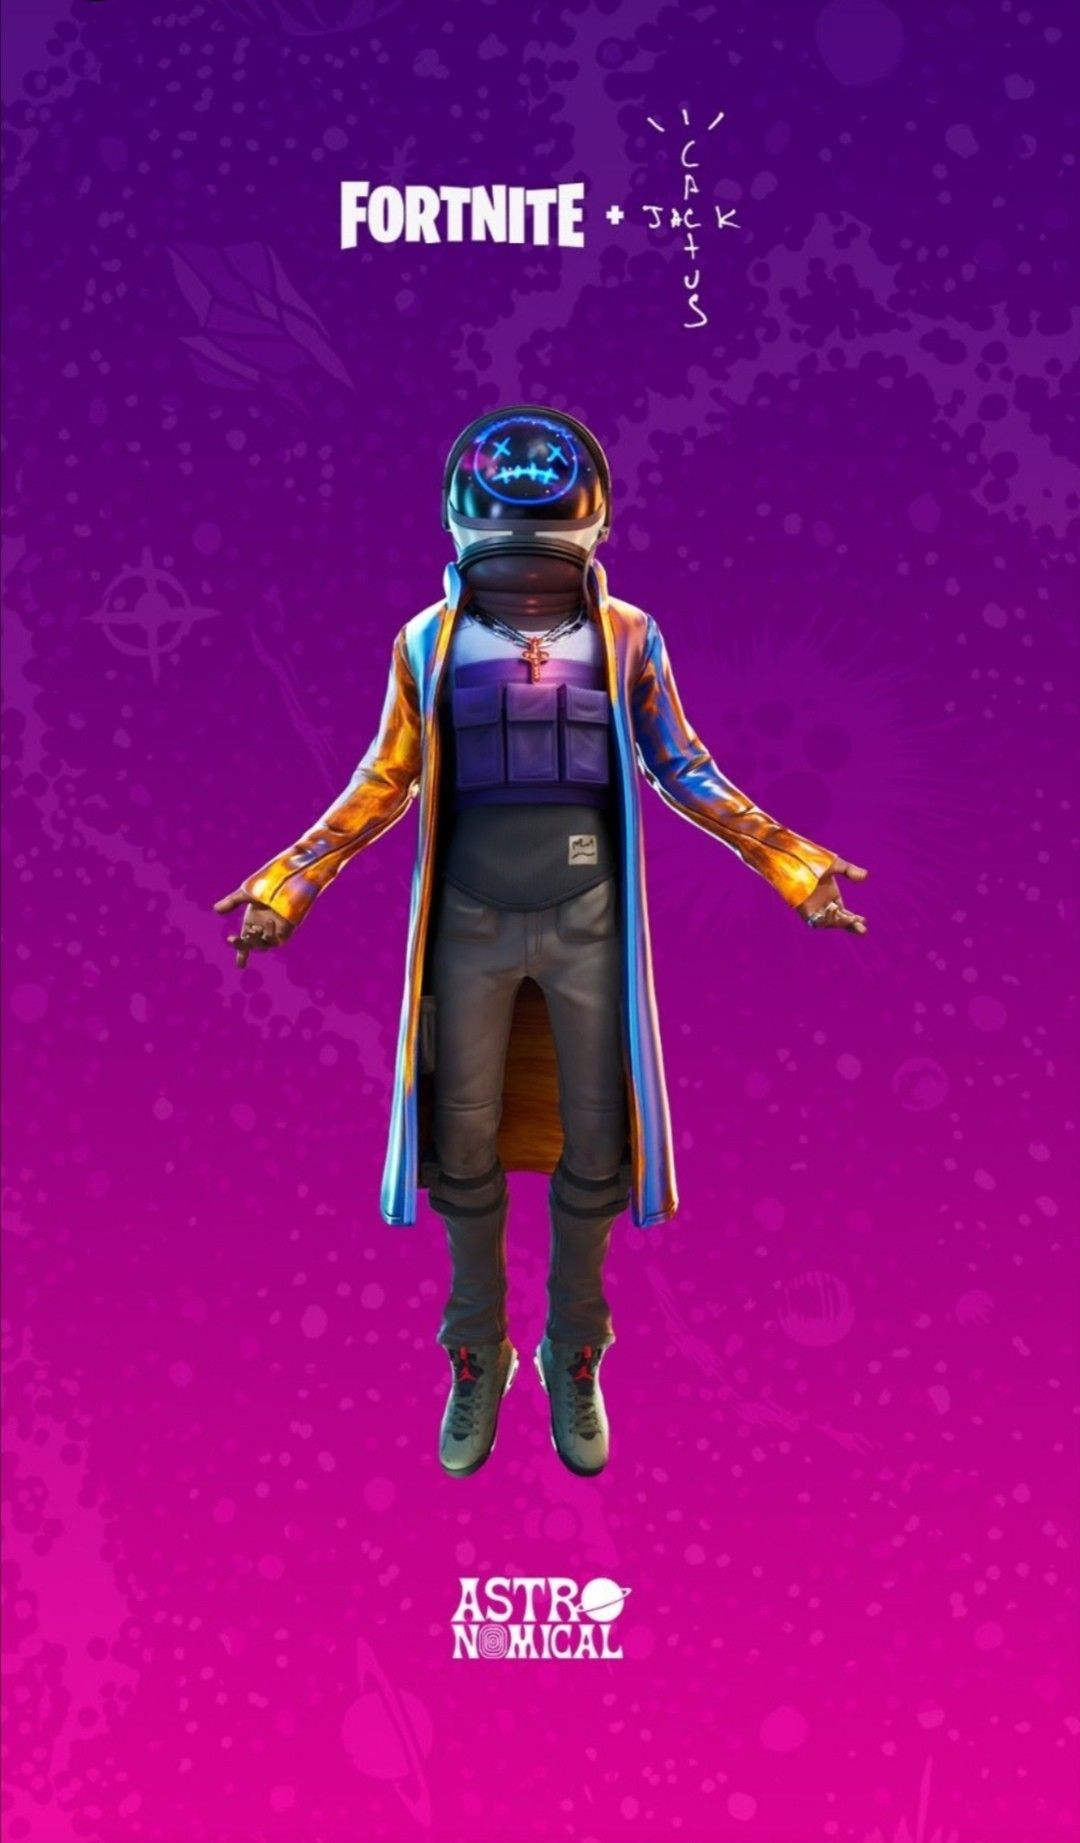 Pin On Fortnite Next Skin